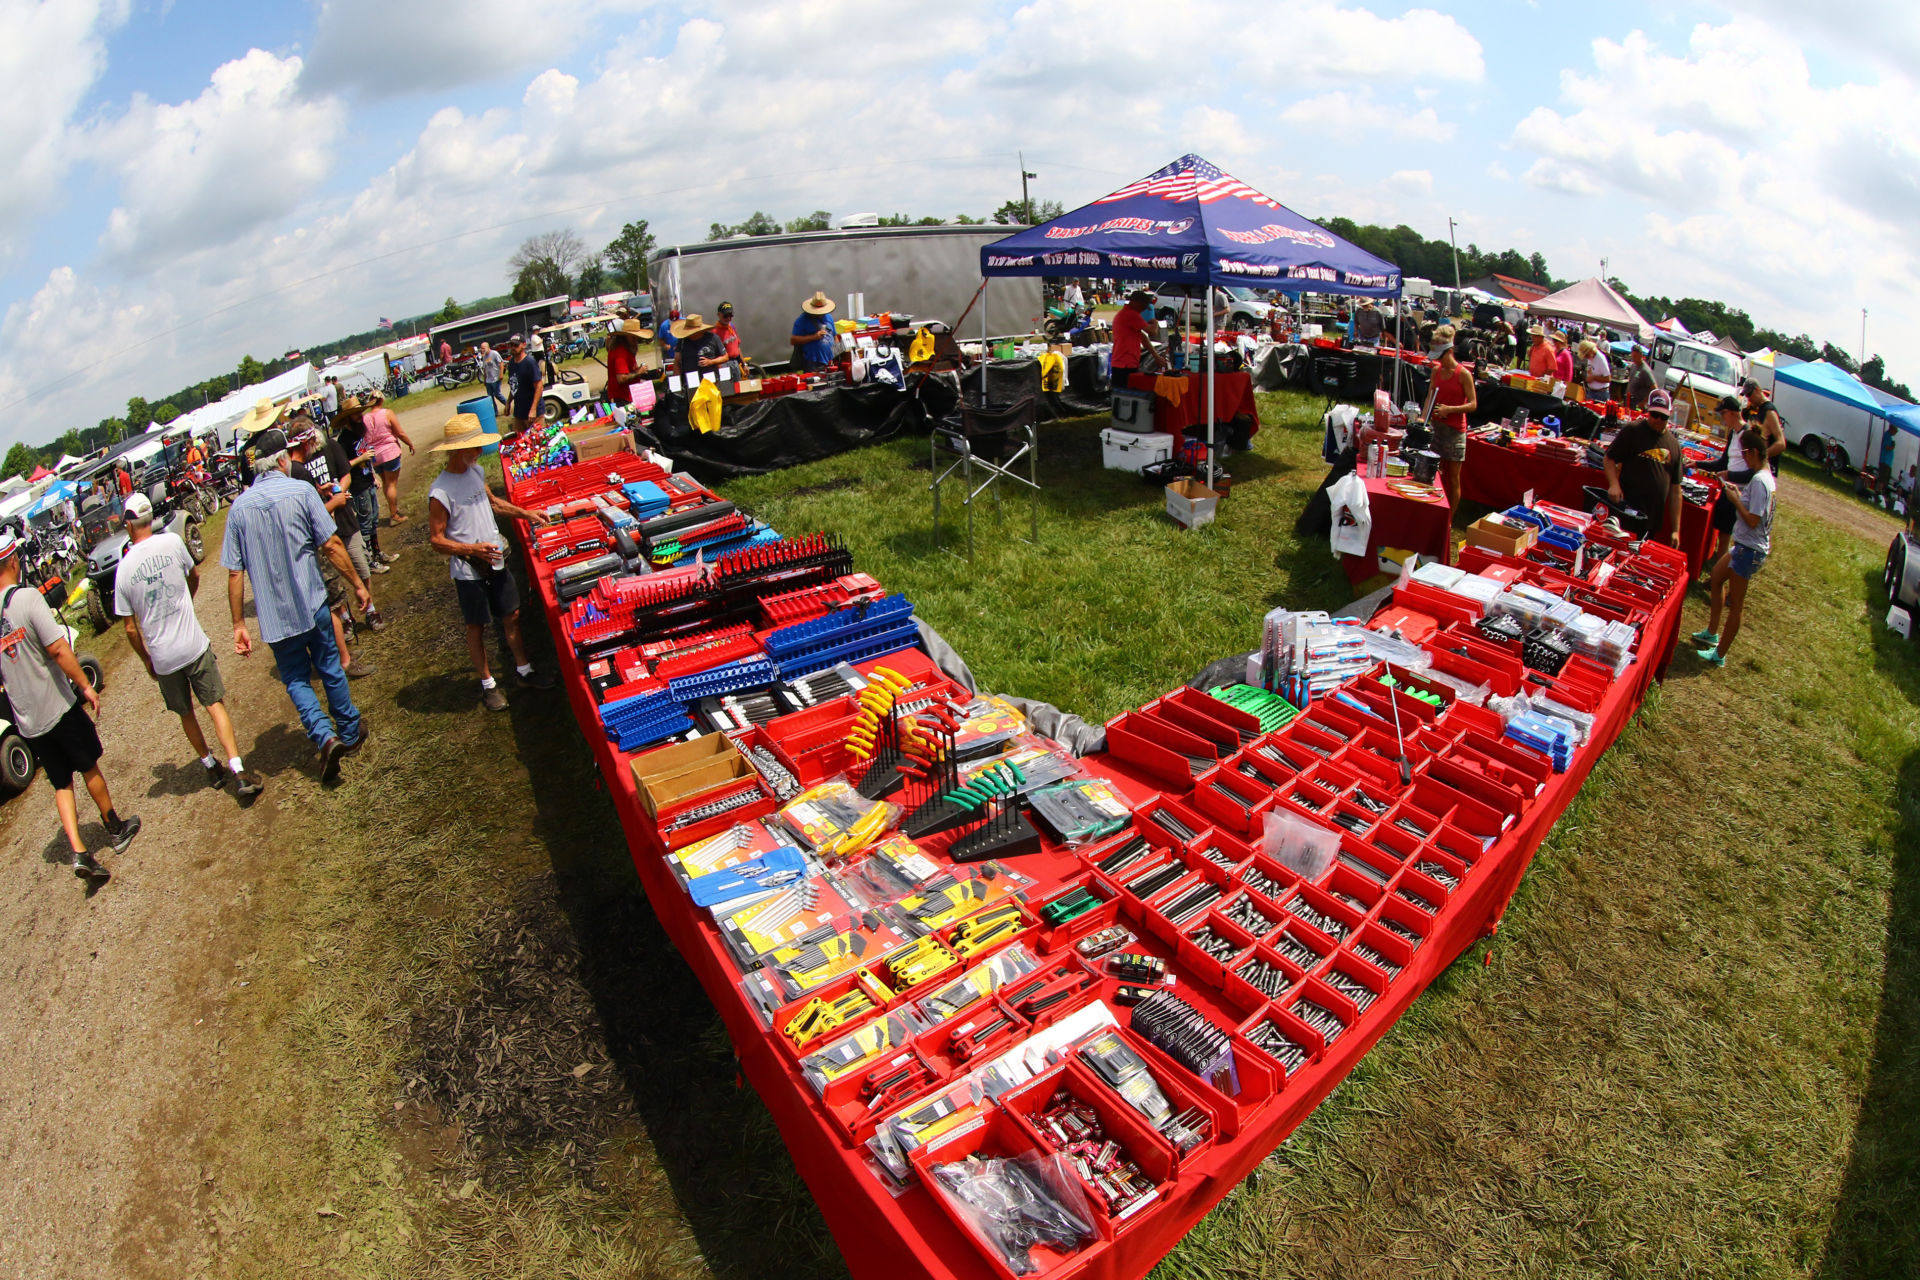 A scene from the 2019 AMA Vintage Motorcycle Days swap meet at Mid-Ohio. Photo courtesy AMA.